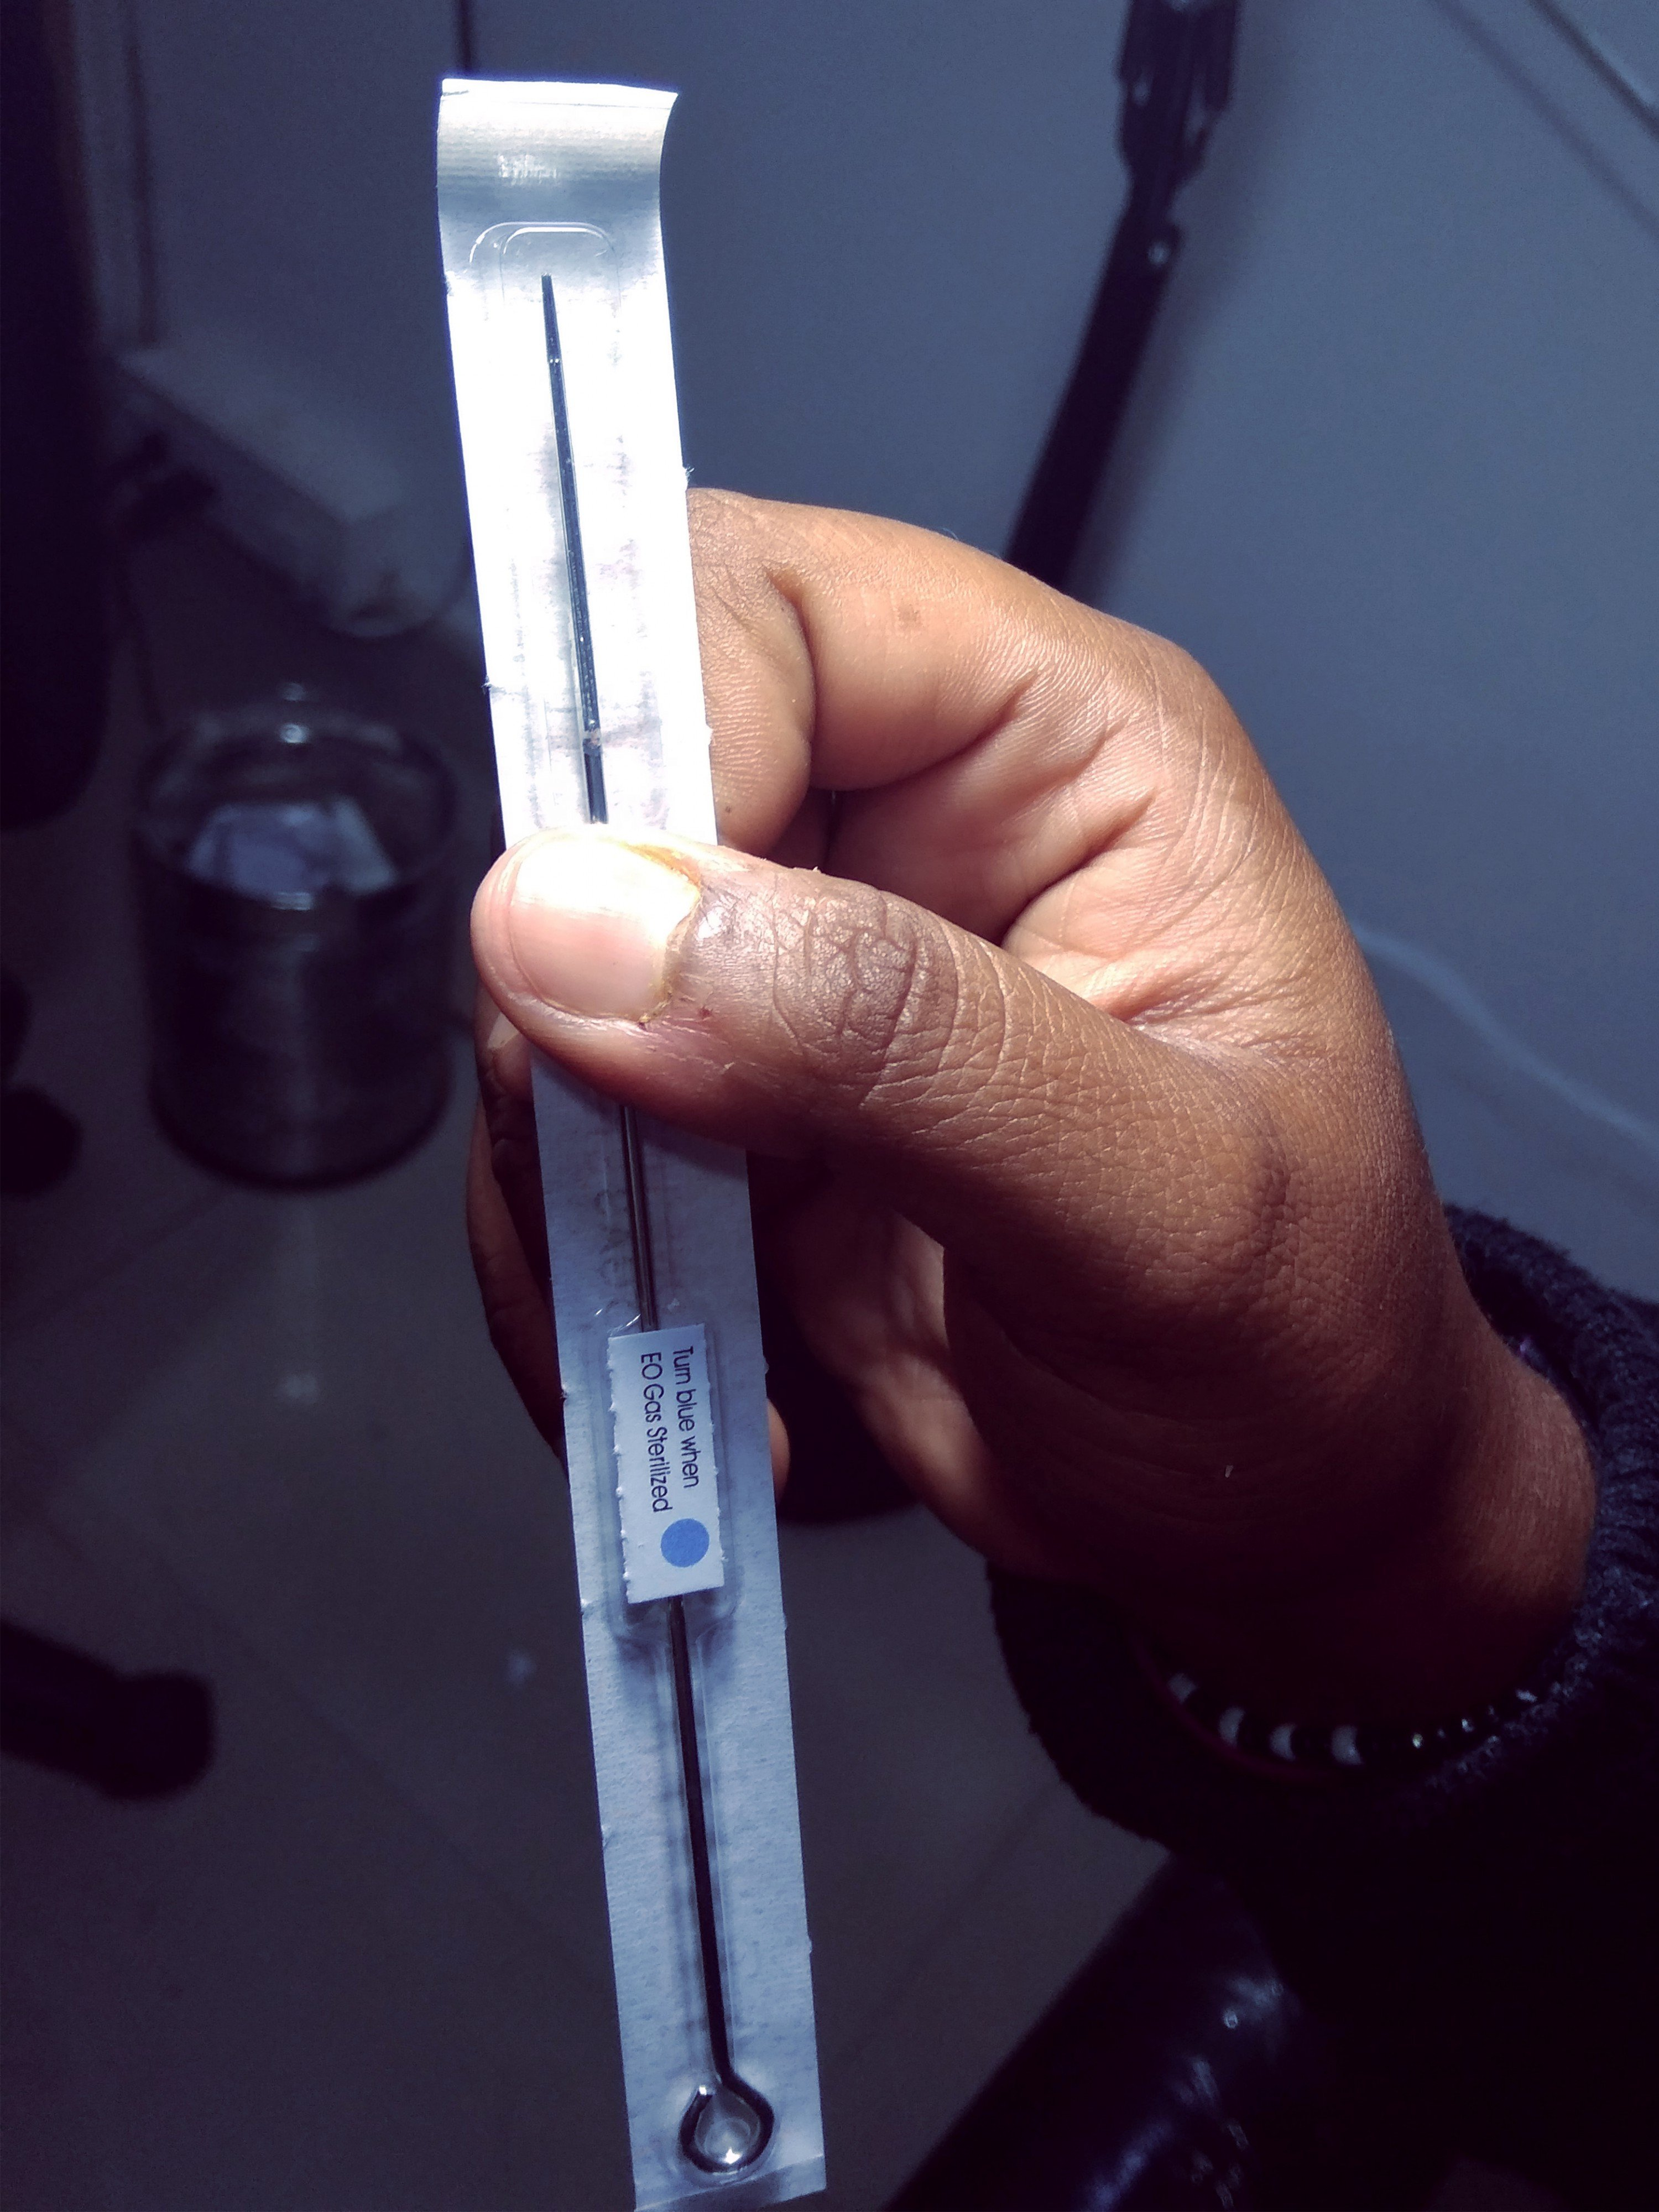 An image of Anya holding out a sealed packet with her tattoo needle inside. The packet has government-regulated labelling.